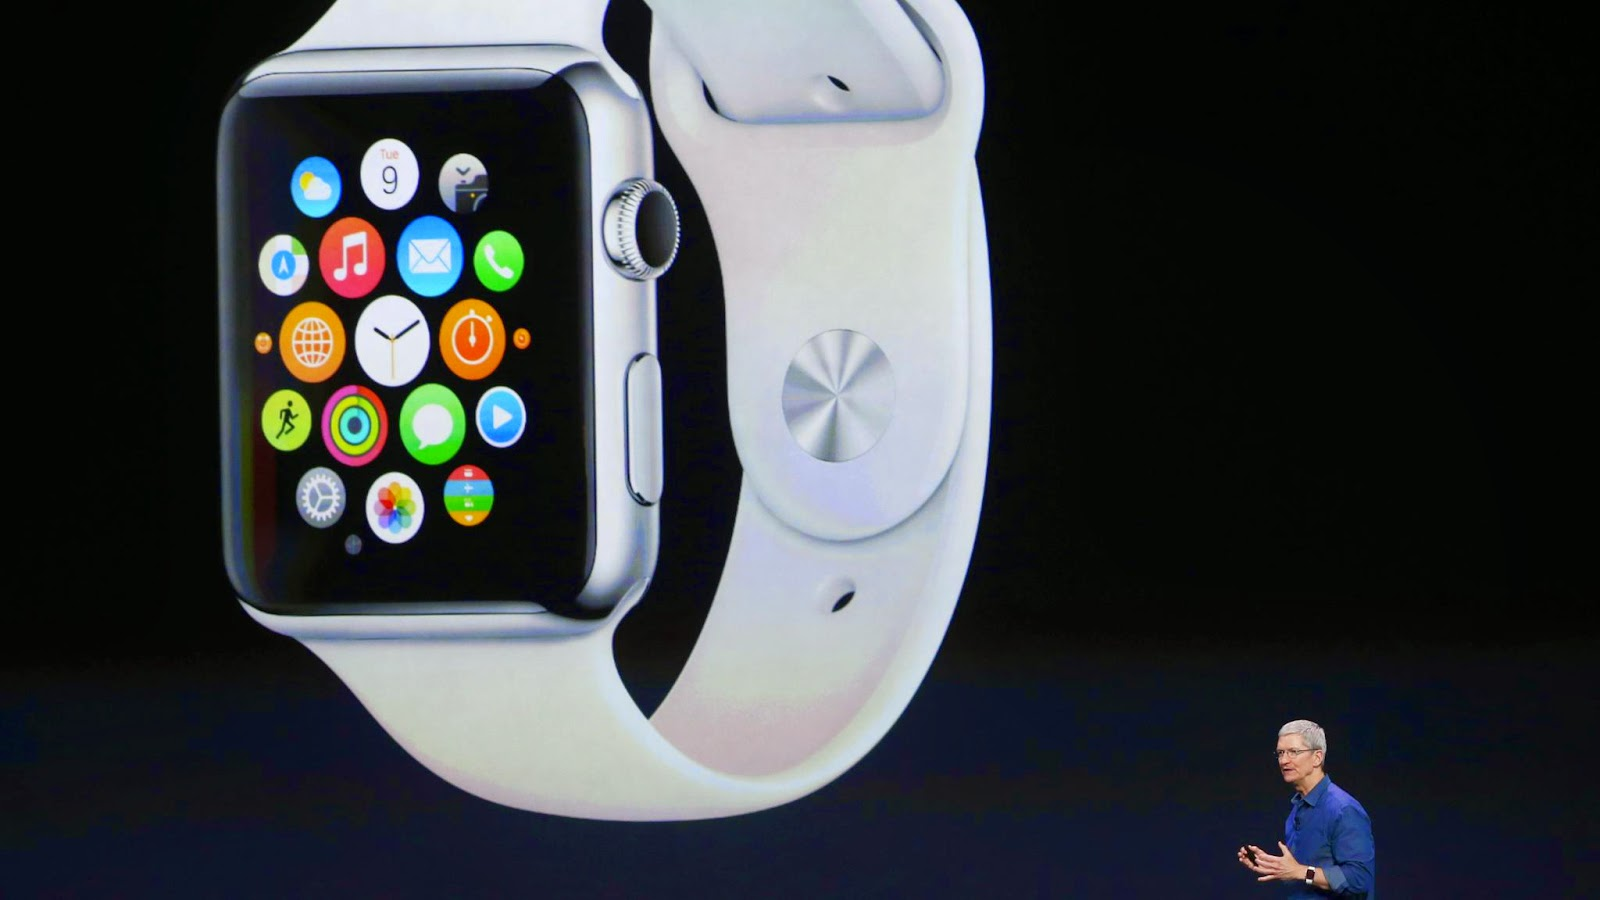 Tim Cook revealing Apple watch